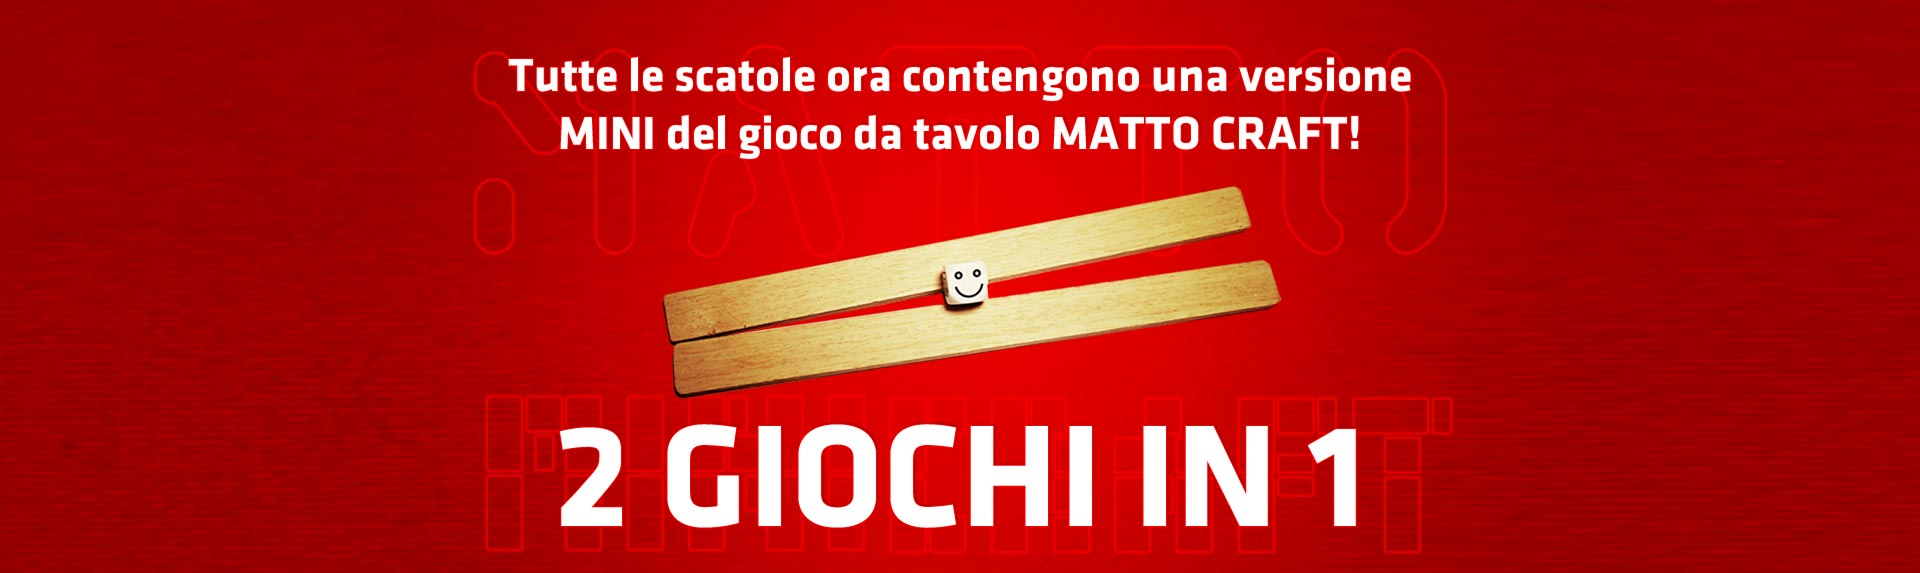 slide matto minicraft gioco educativo